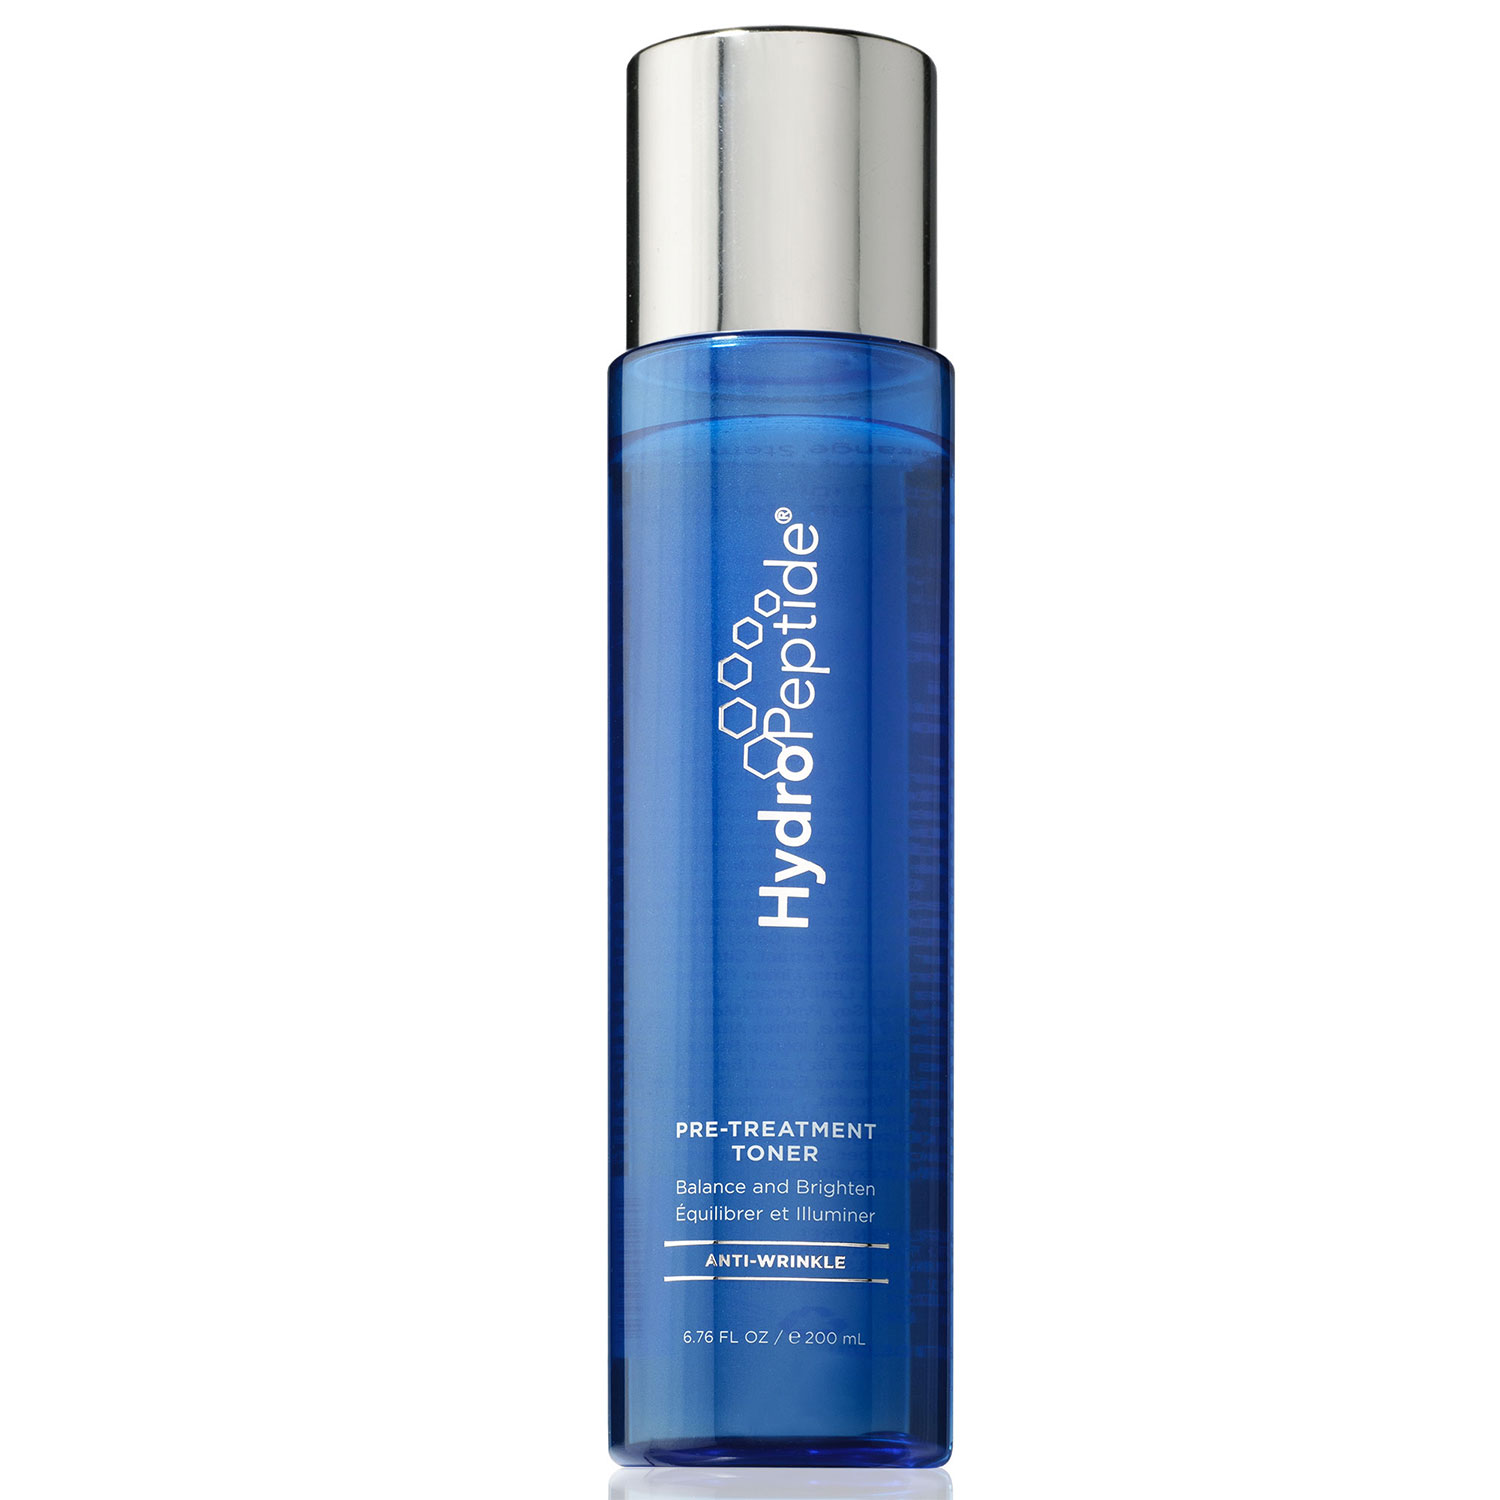 HydroPeptide PRE-TREATMENT TONER - Balance and Brighten ANTI-WRINKLE (6.76 fl oz / 200 ml)